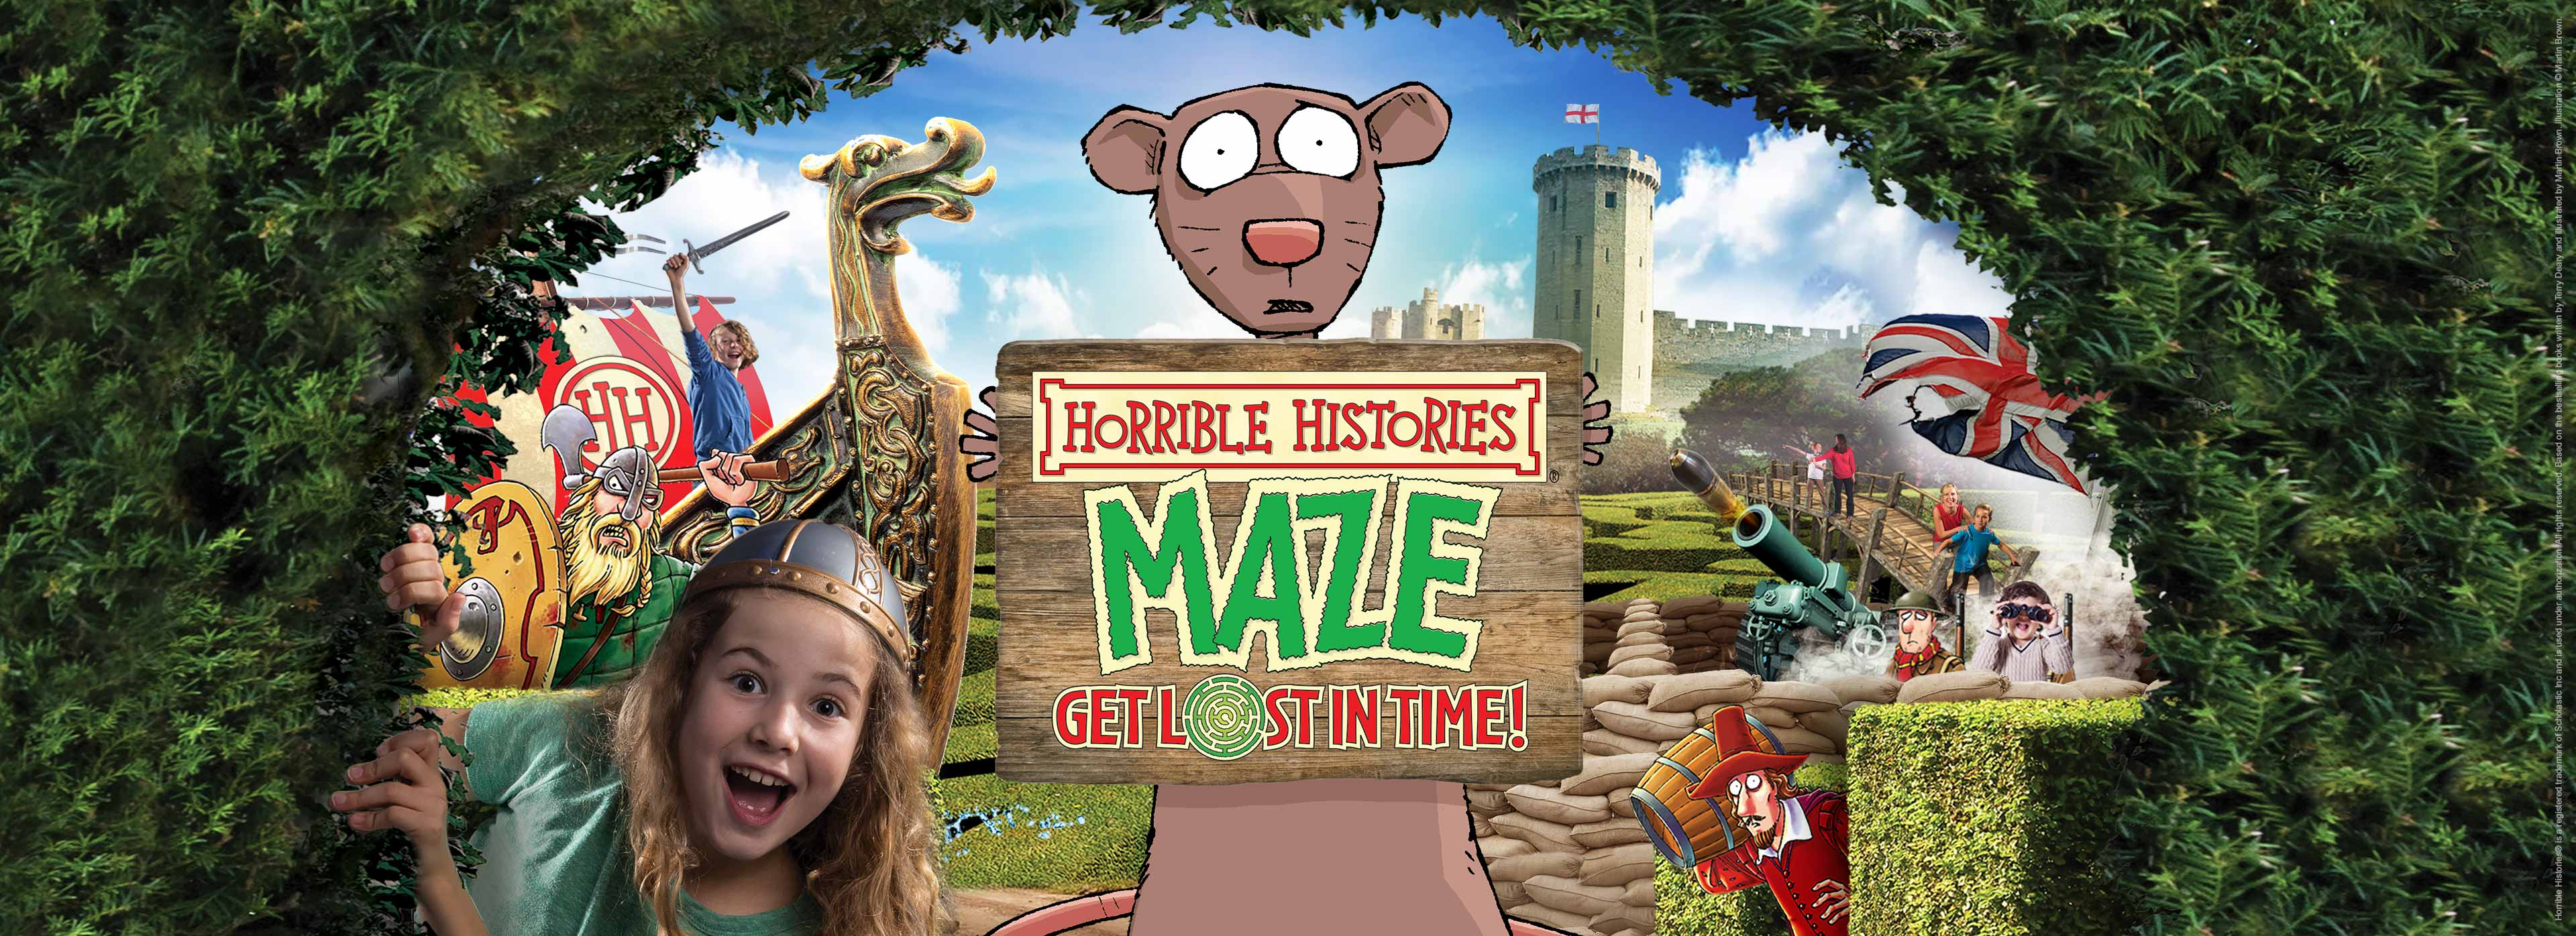 Horrible Histories Maze